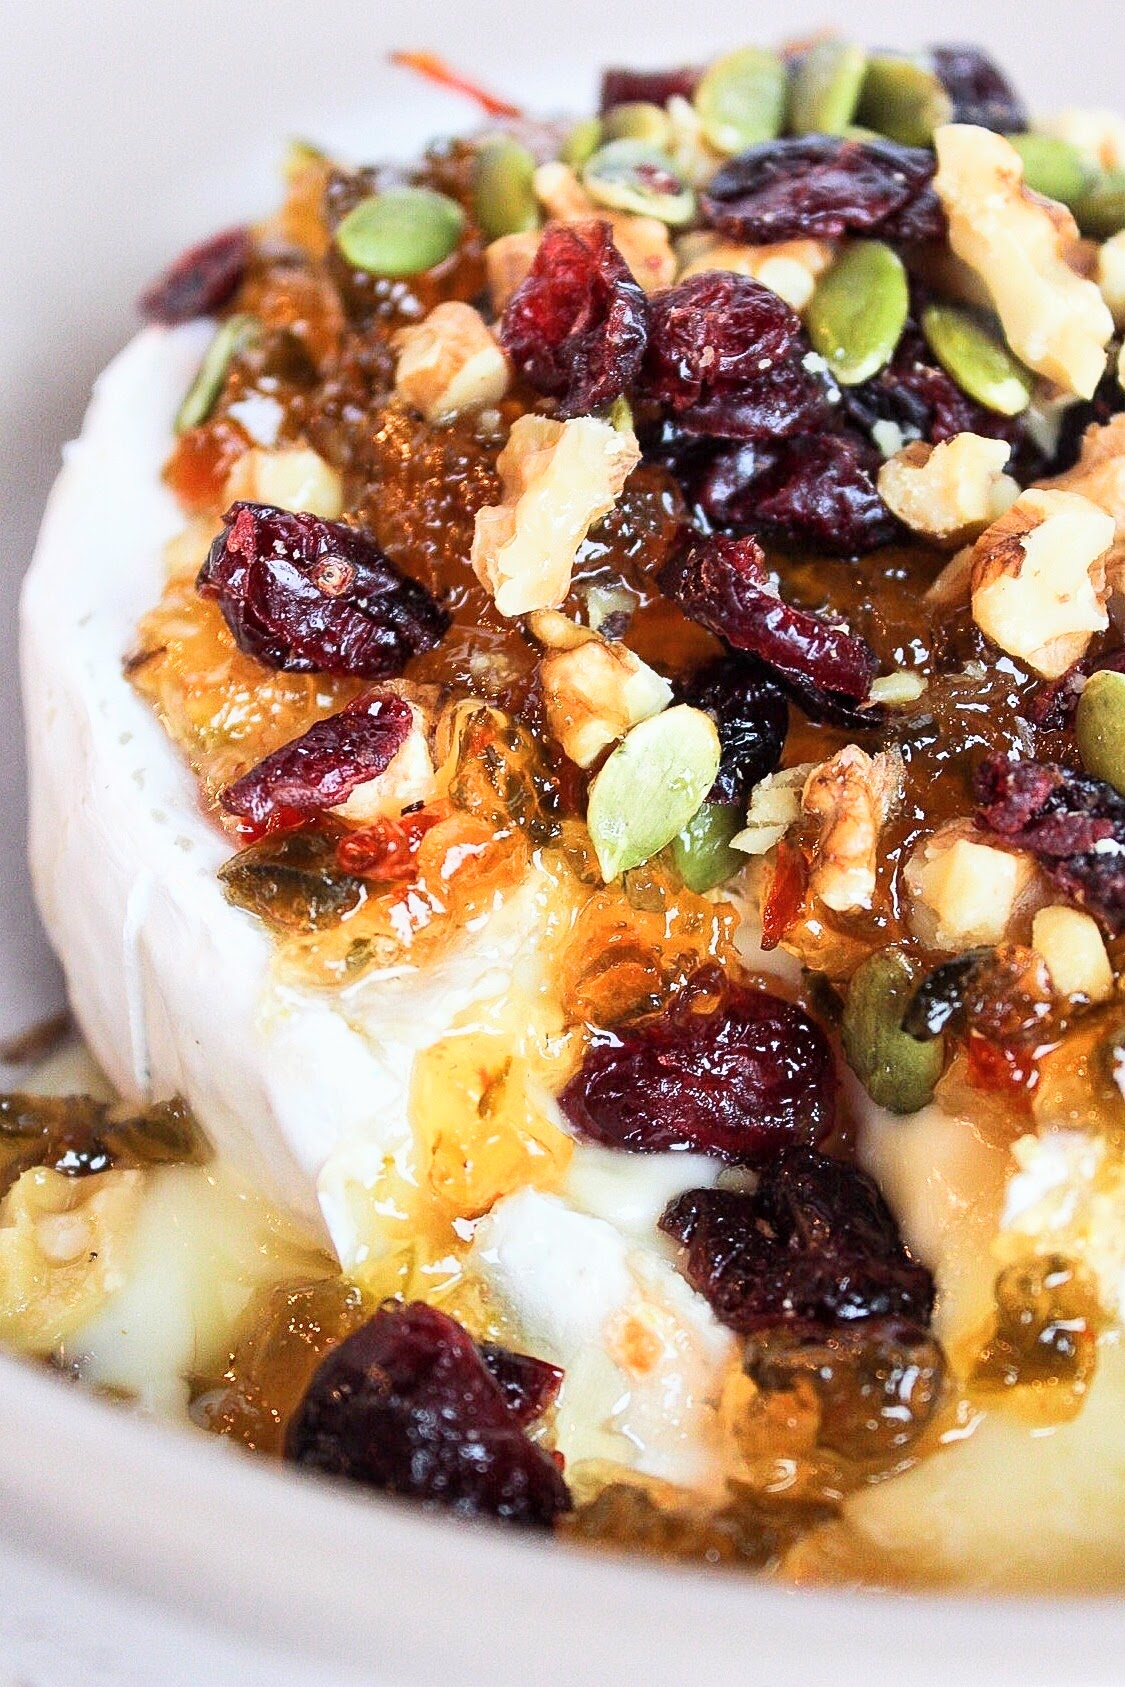 Baked Brie with Pepper Jelly